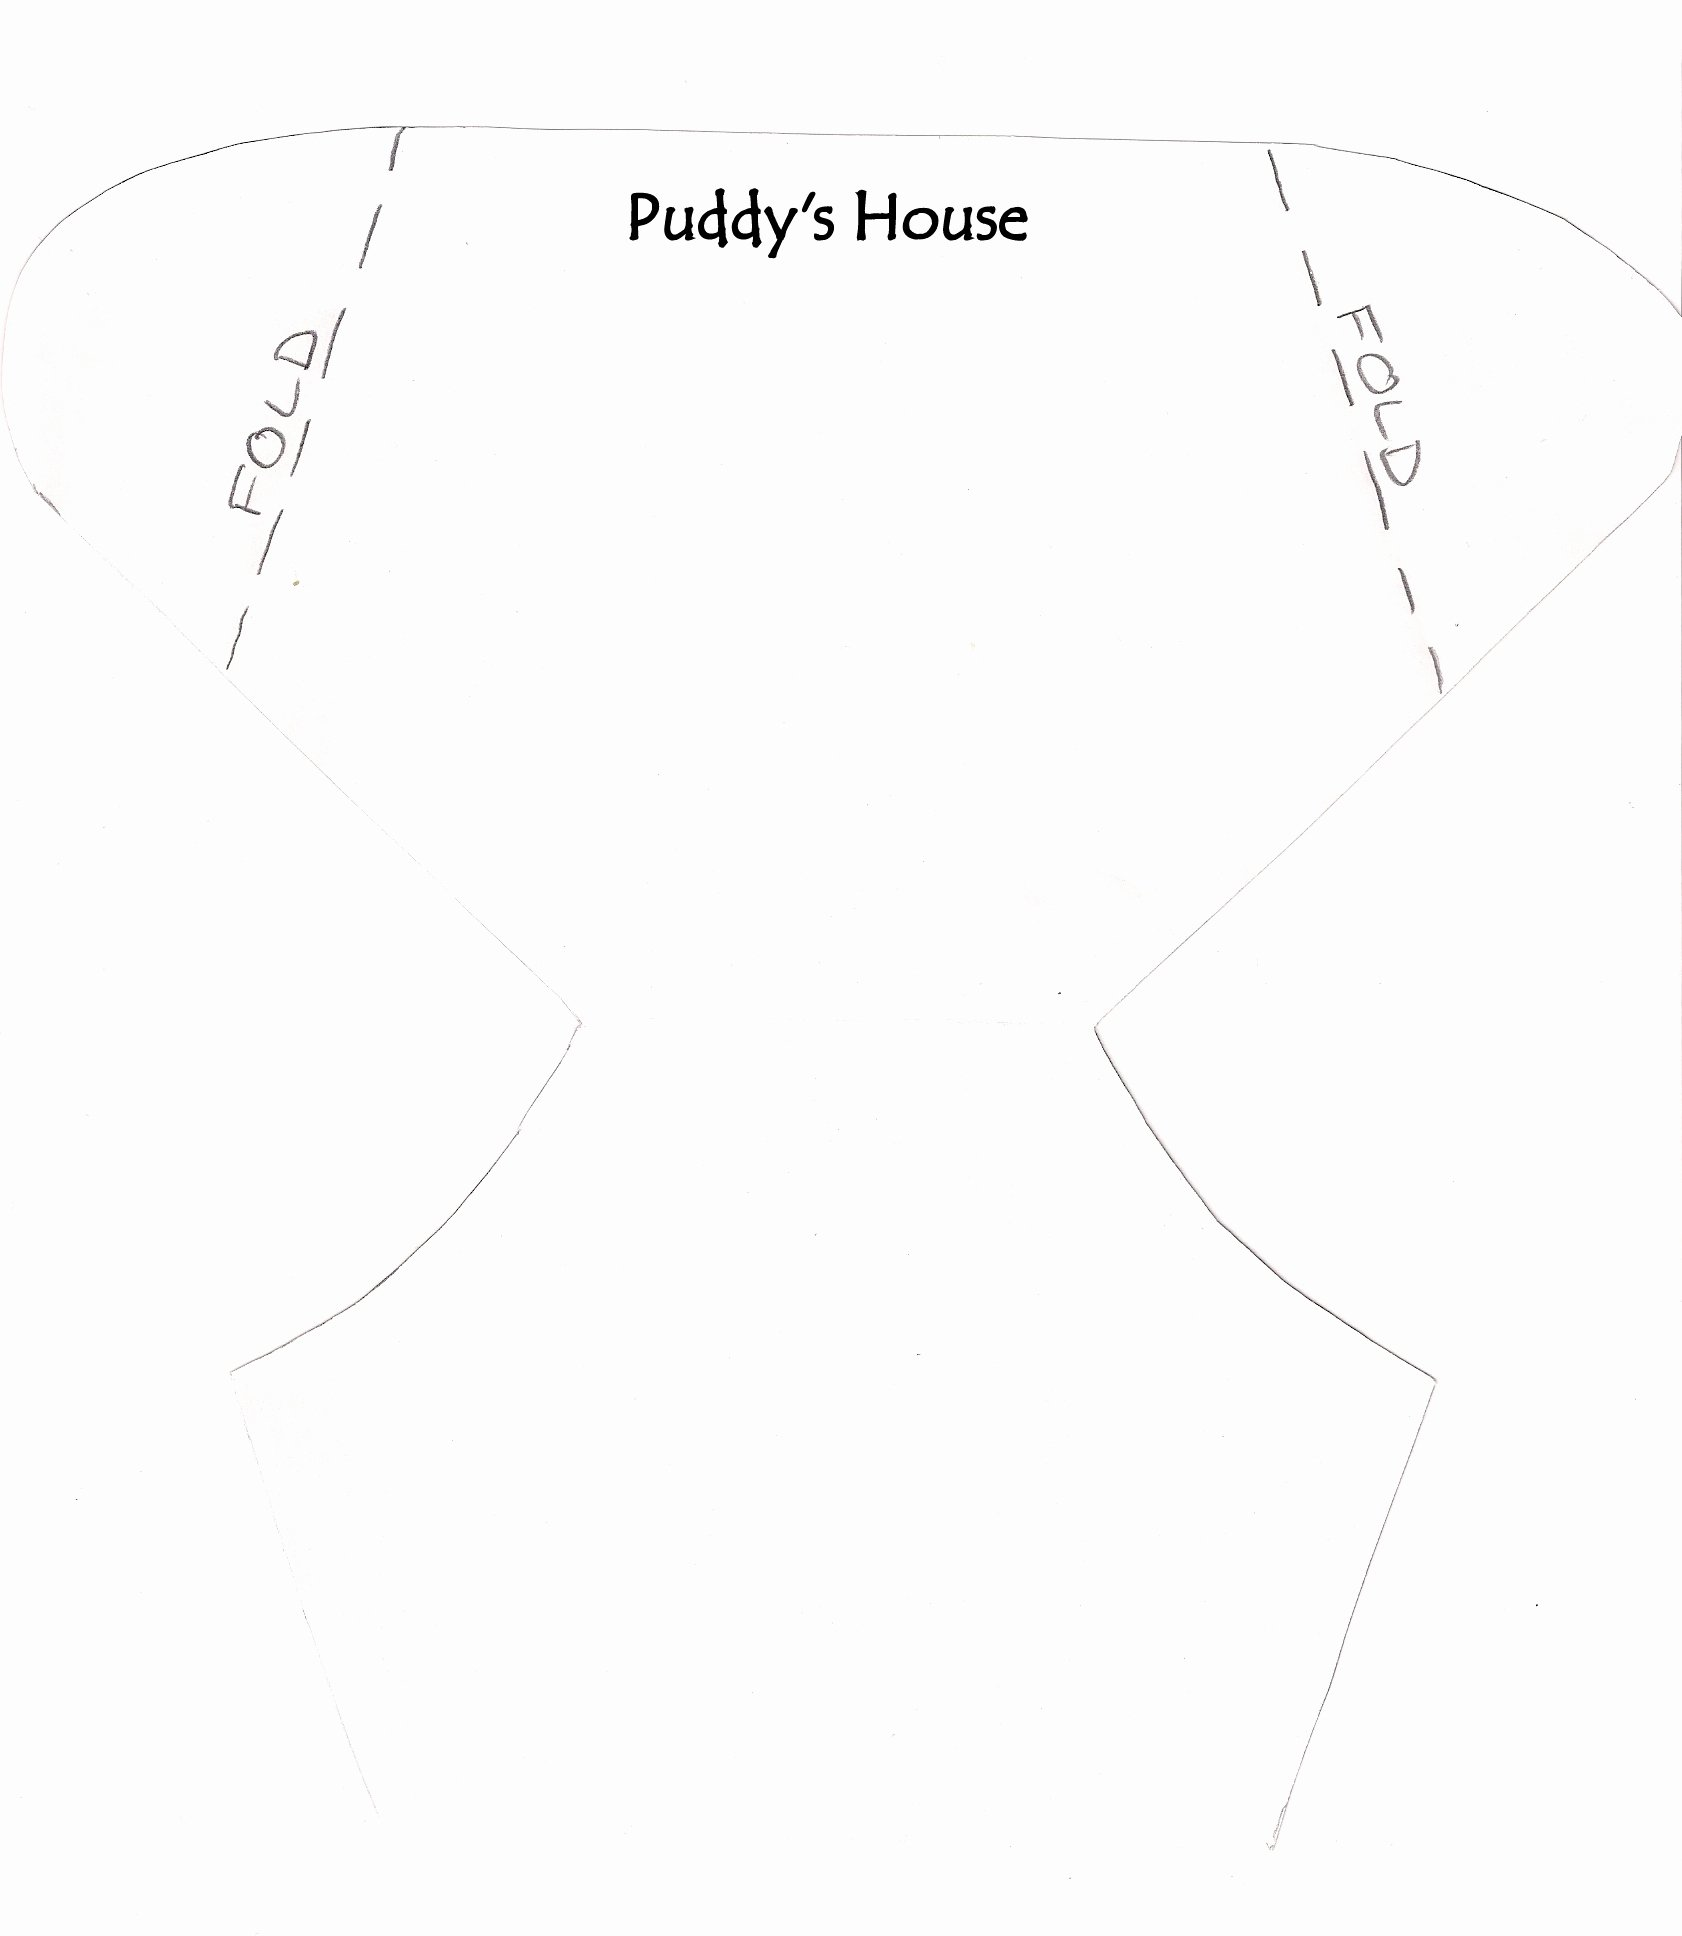 Baby Diaper Invitation Template Inspirational Diy Diaper Invitation – Puddy S House